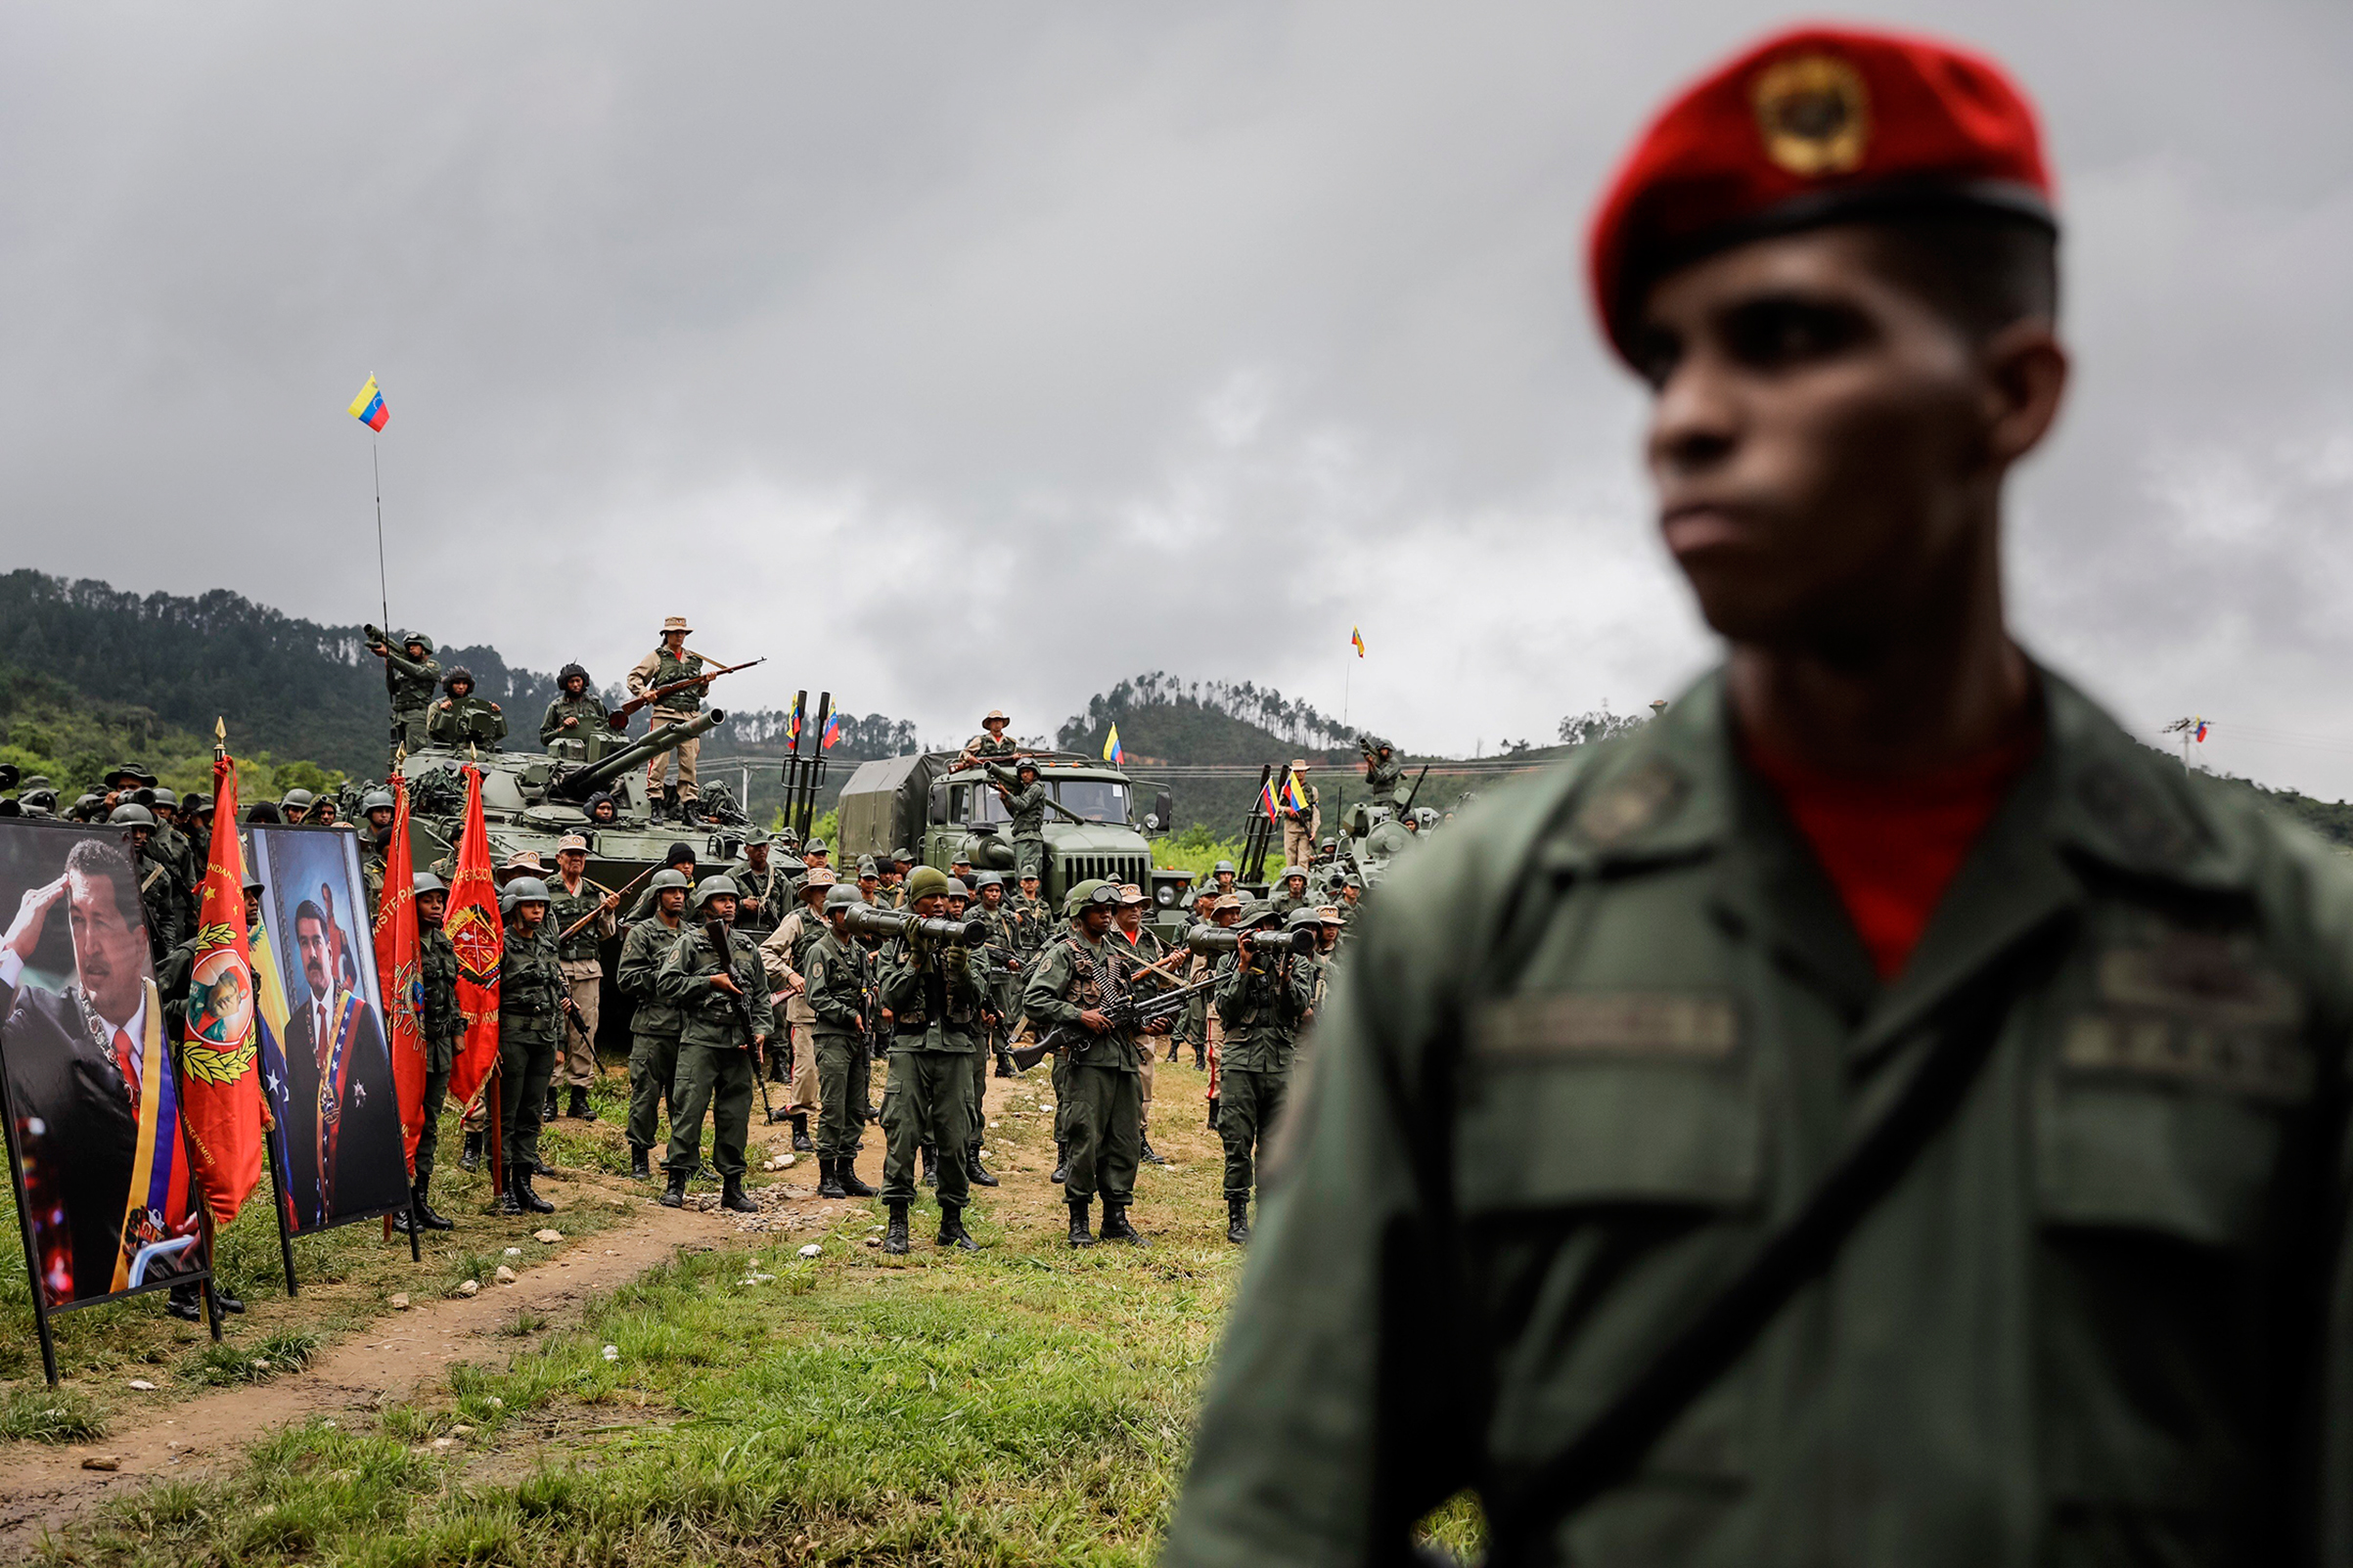 Venezuelan soldiers staged a show of force in Caracas on Aug.14 in response to Trump's remarks